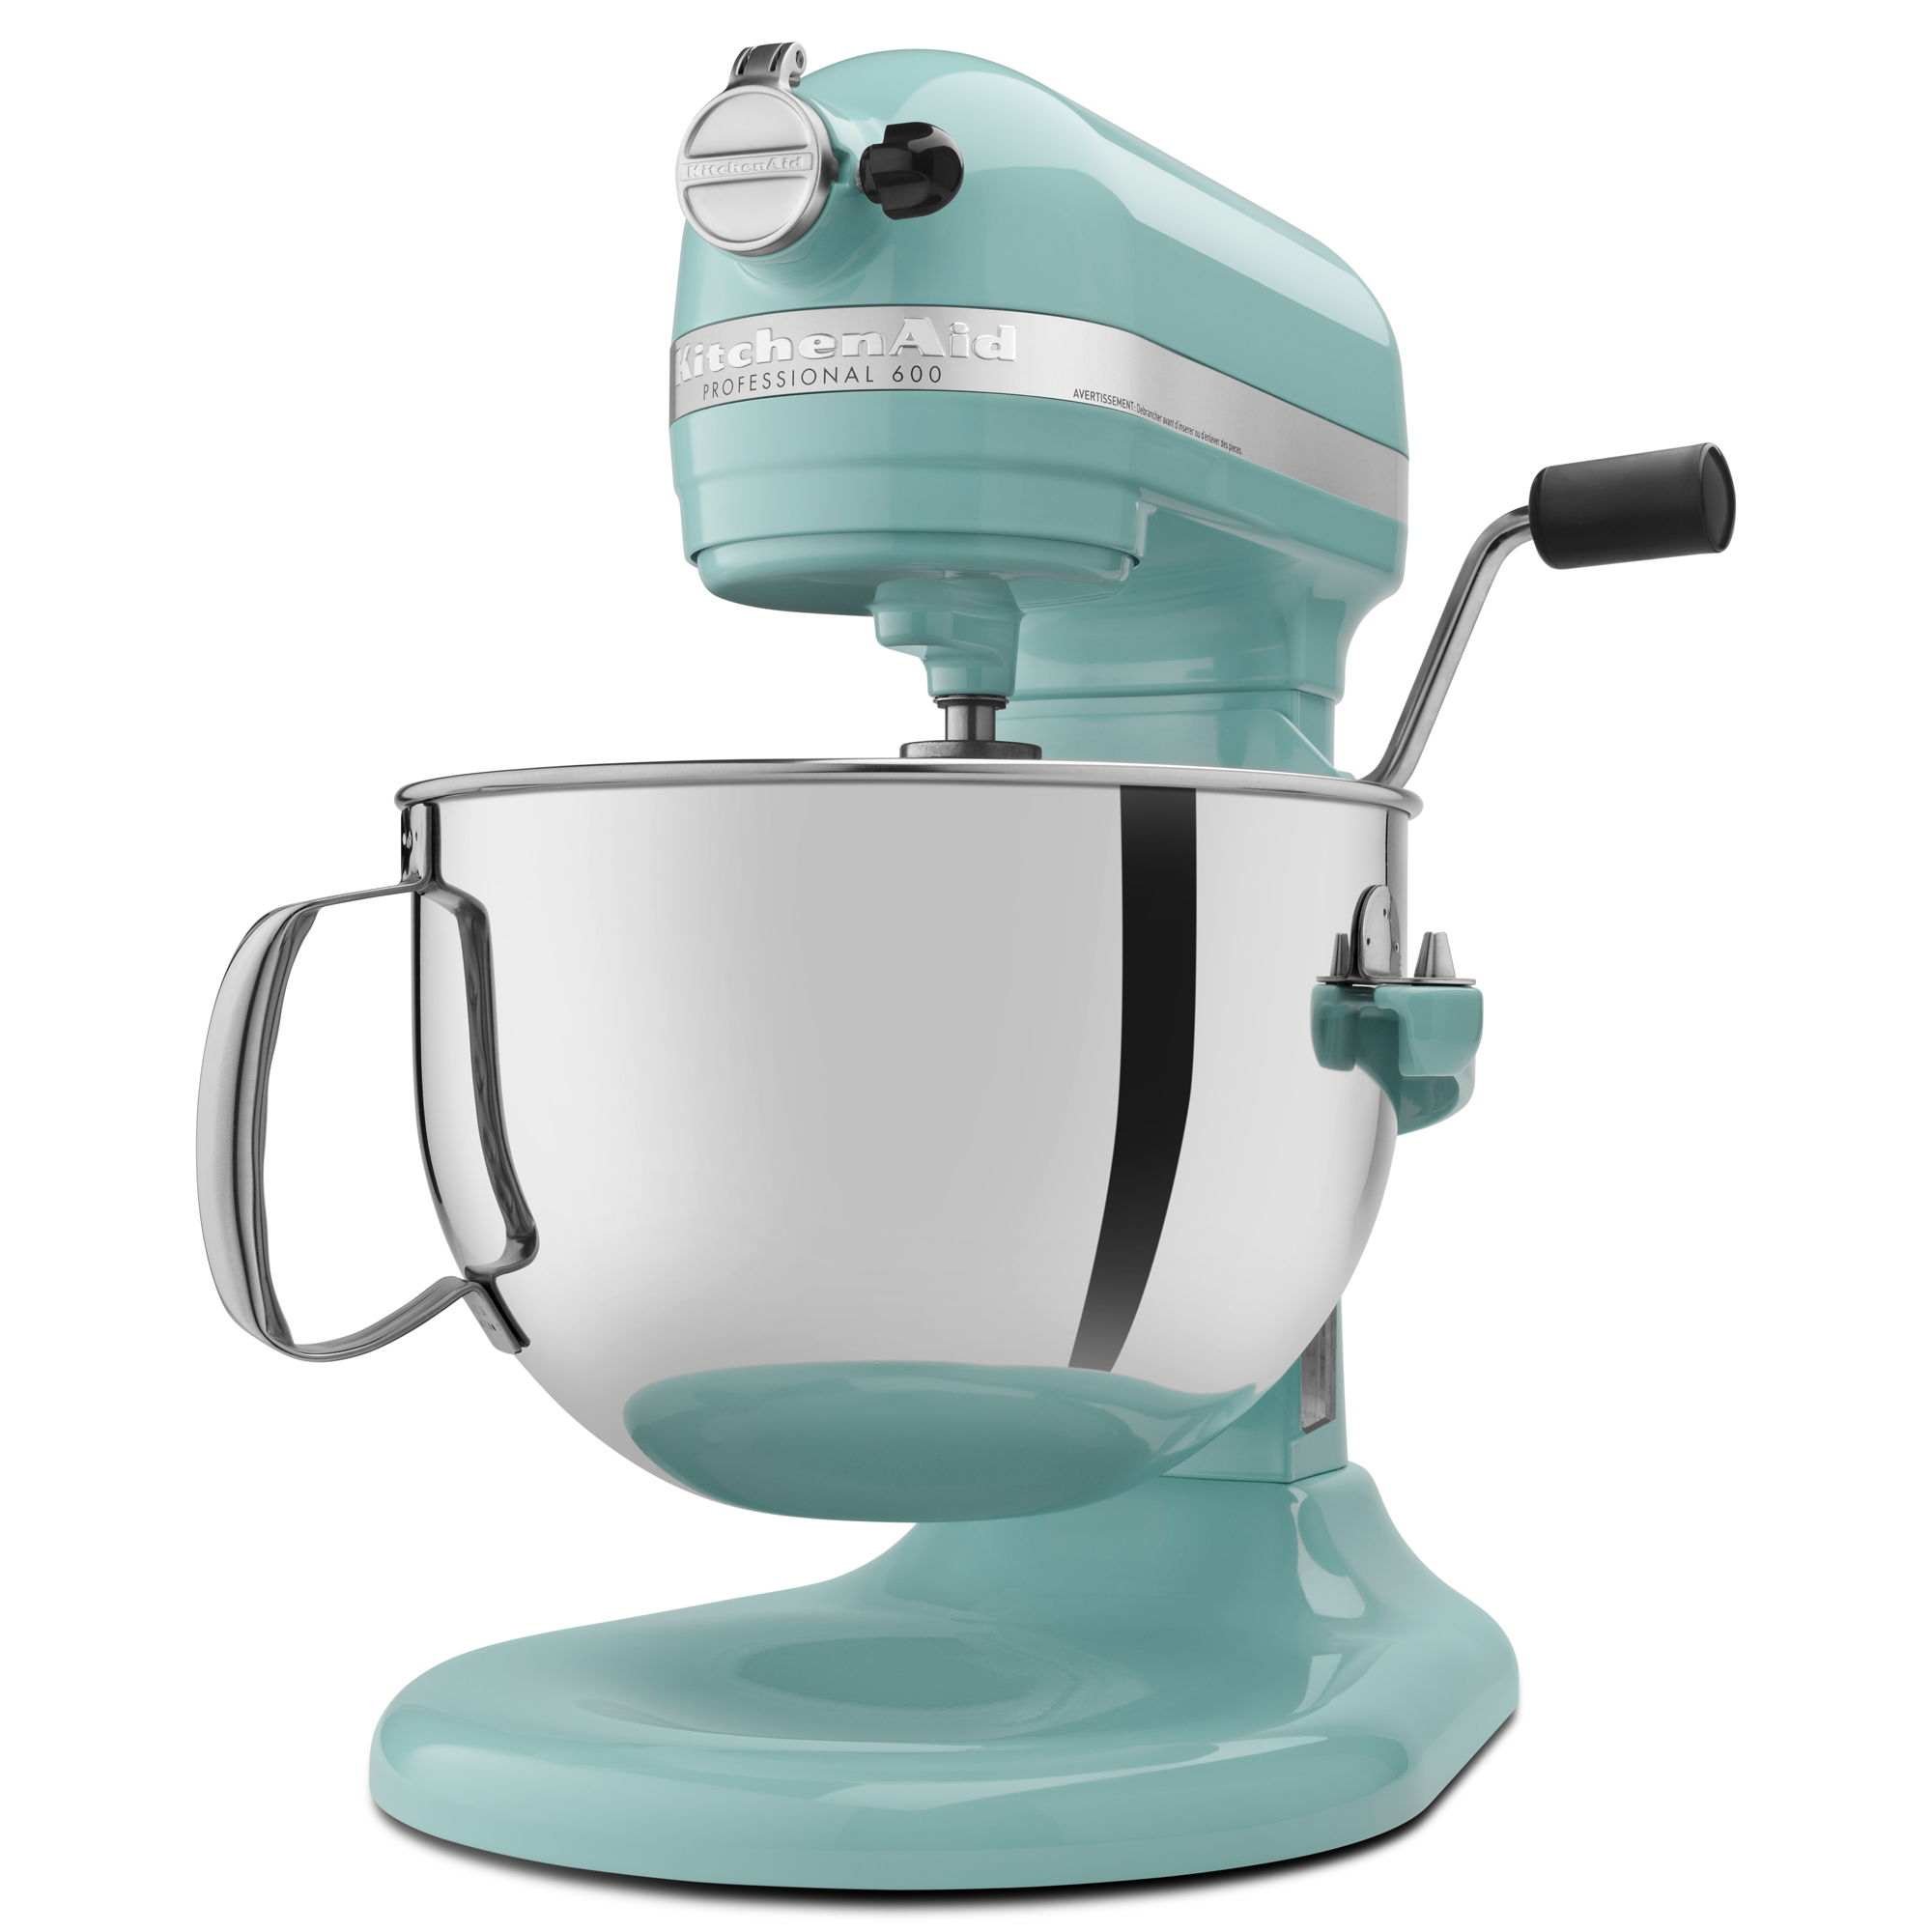 KitchenAid-Refurbished-Pro-600-Series-6-Quart-Bowl-Lift-Stand-Mixer-RKP26M1X thumbnail 7